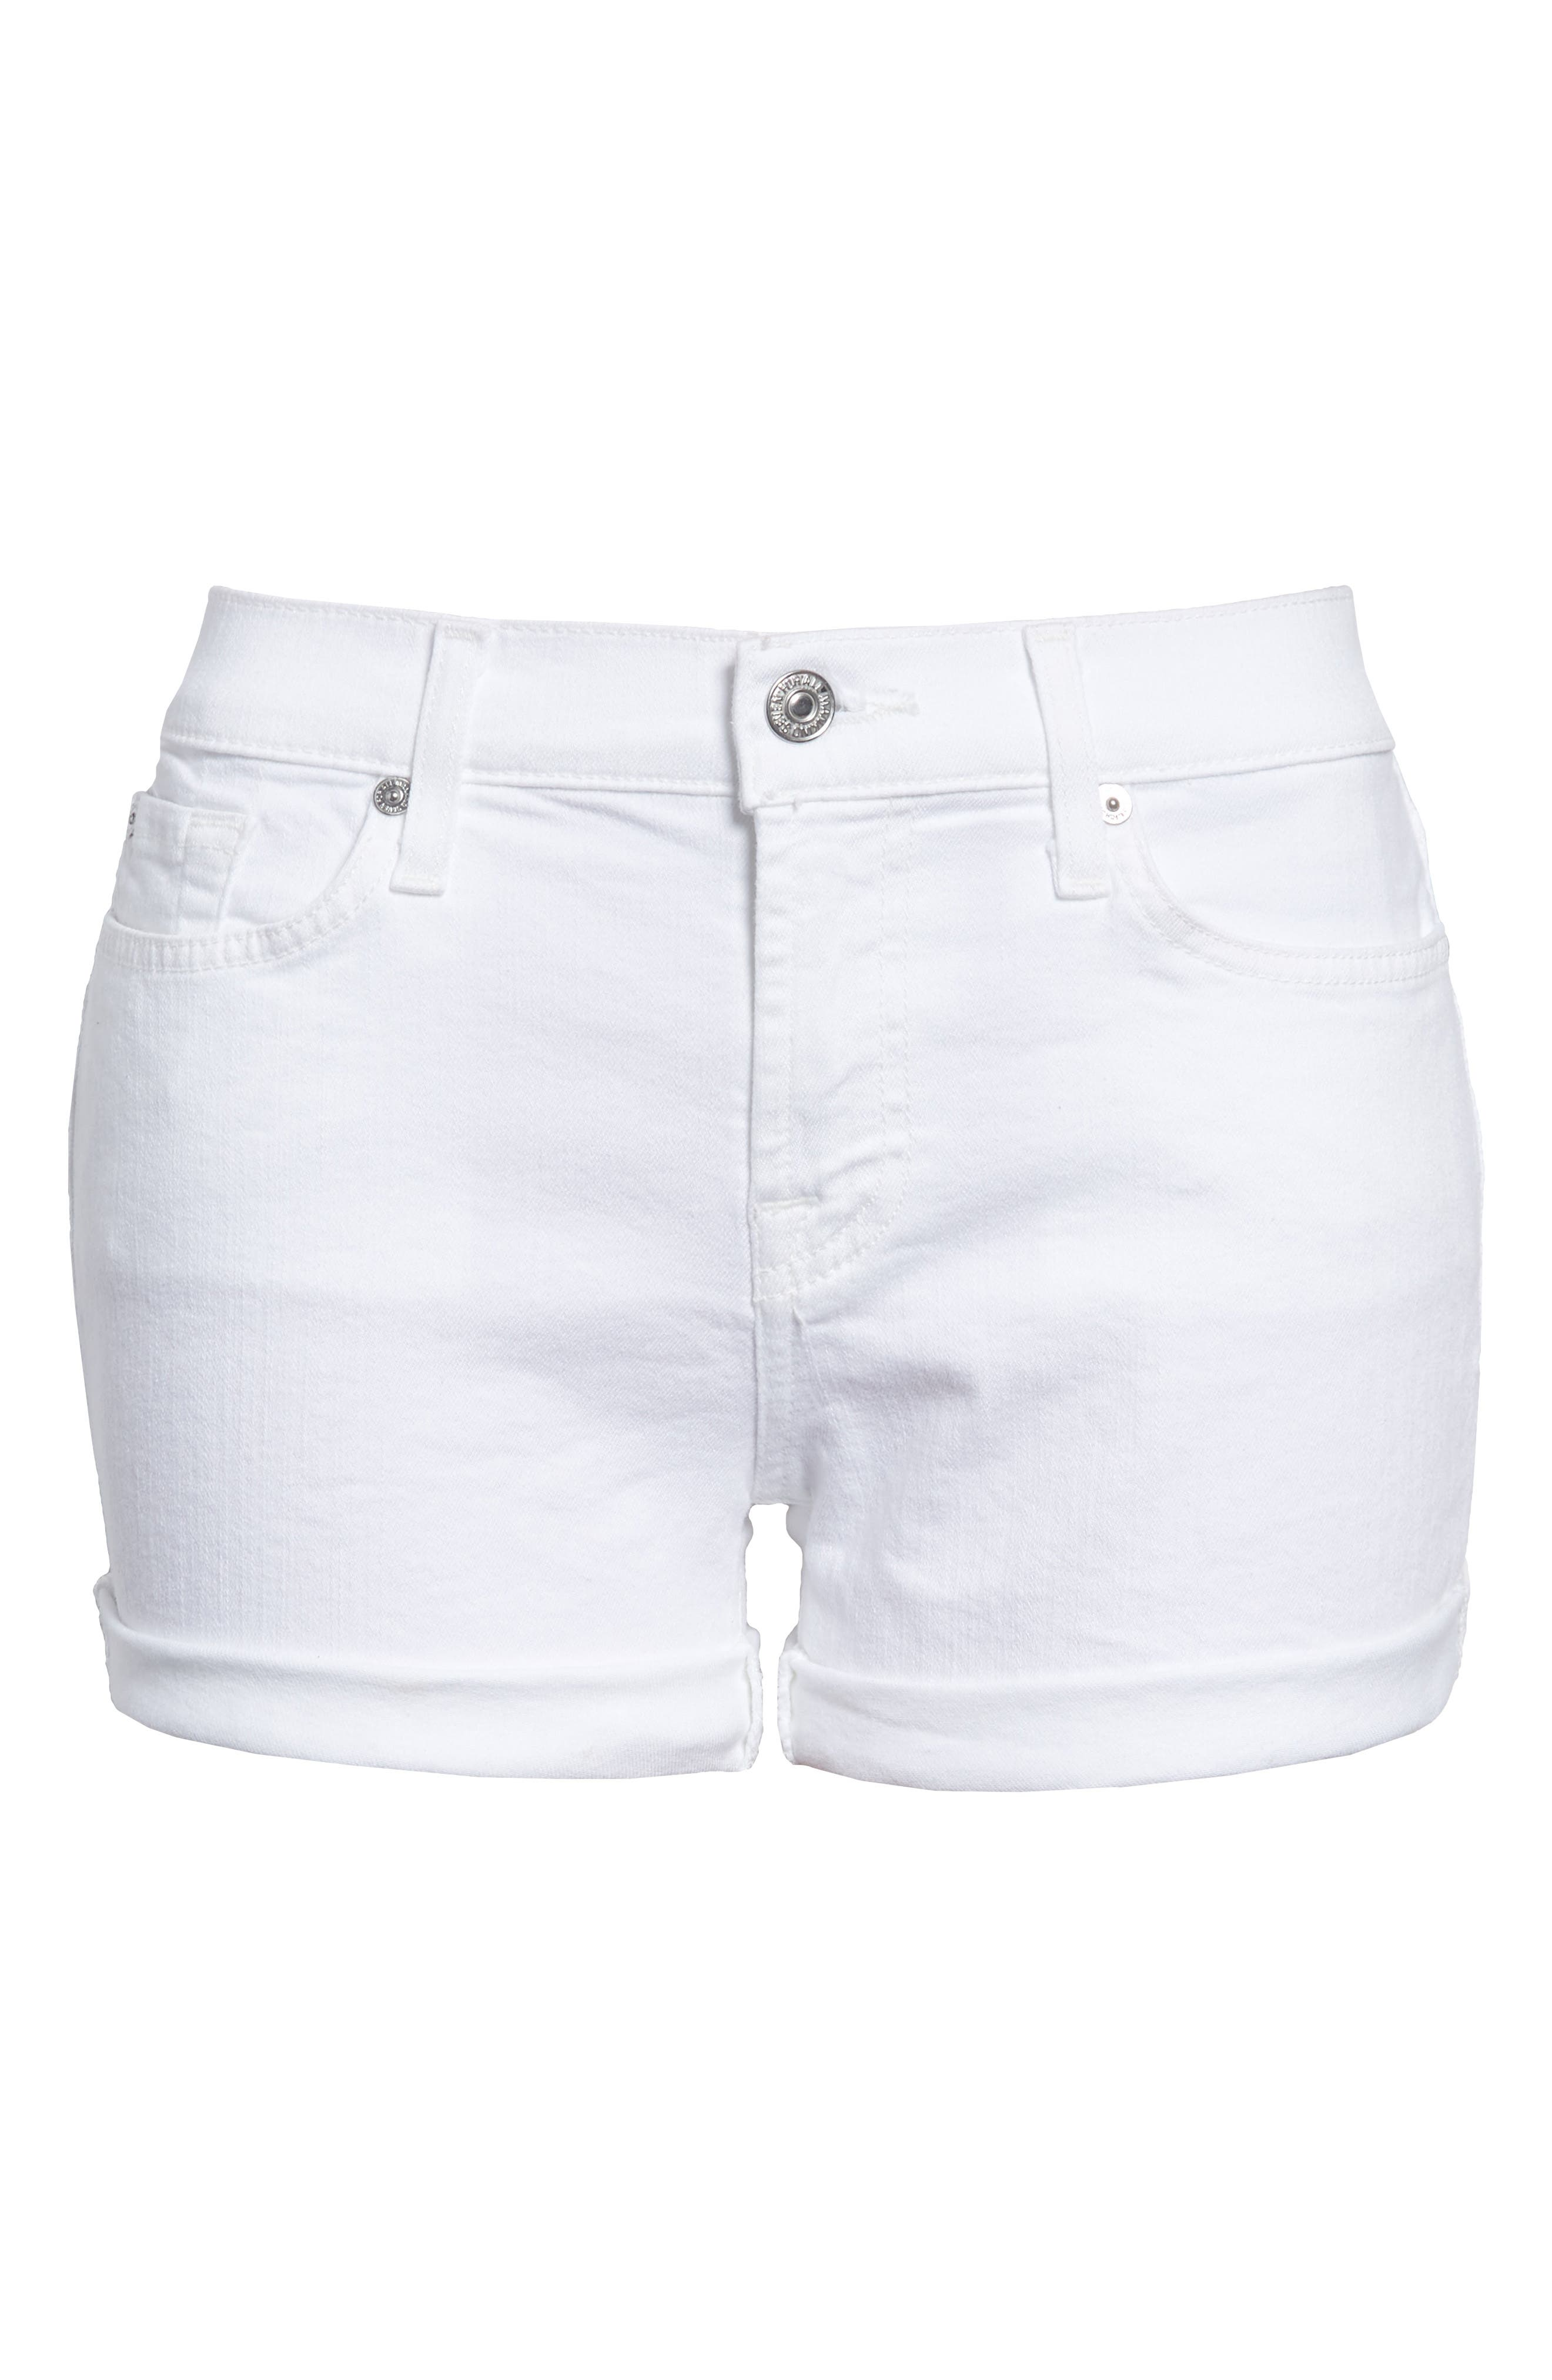 Women's 7 For All Mankind Cuffed Denim Shorts